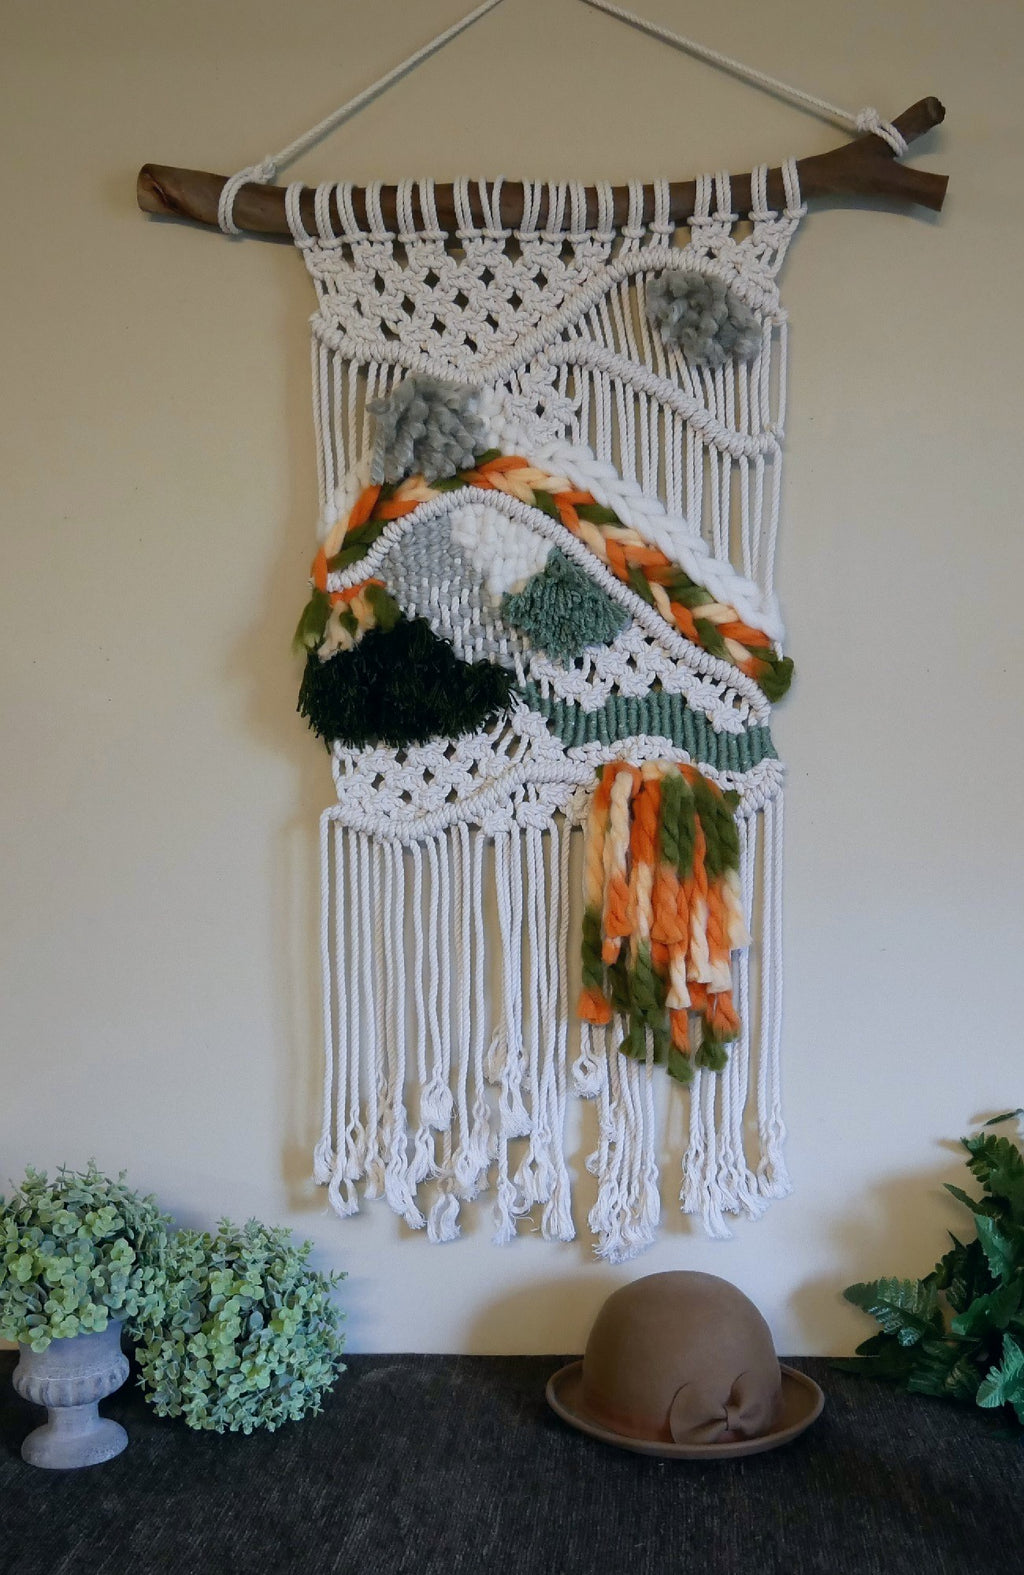 Macrame-Weave-Wall-Hanging-Nchanted-Gifts